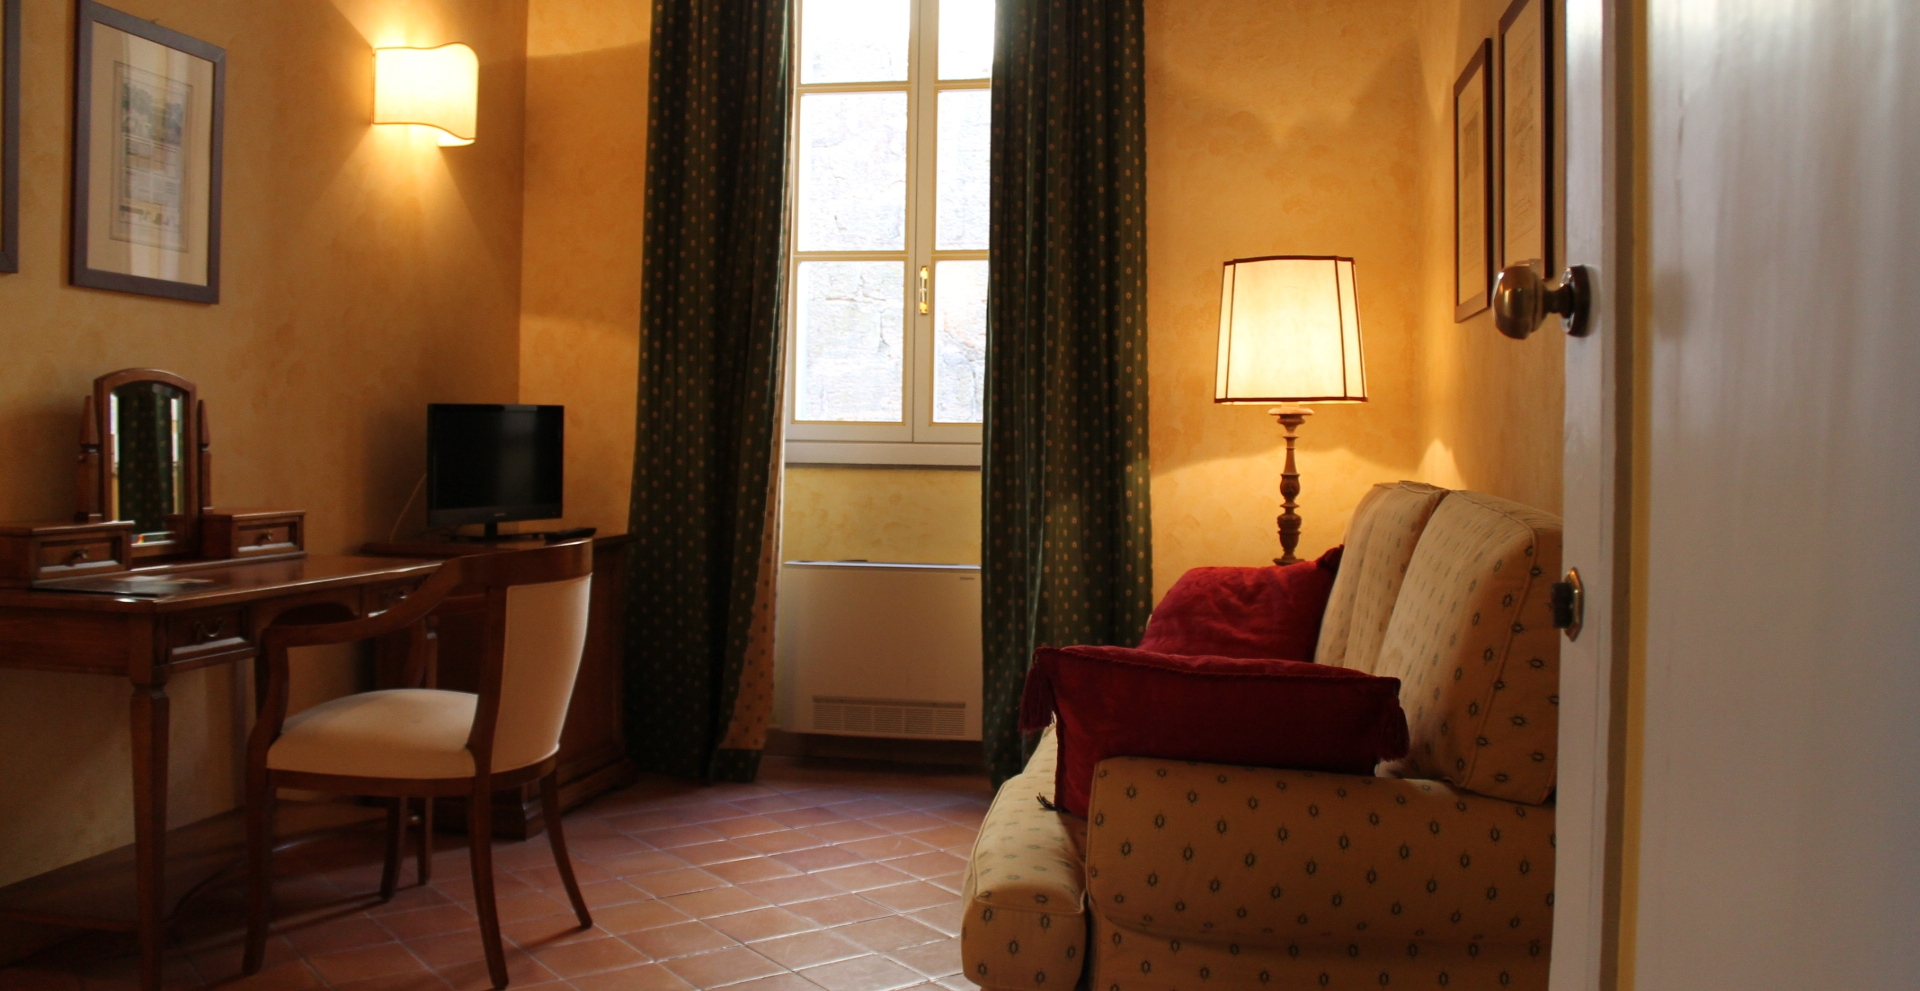 bedrooms at La Tana dell'Istrice